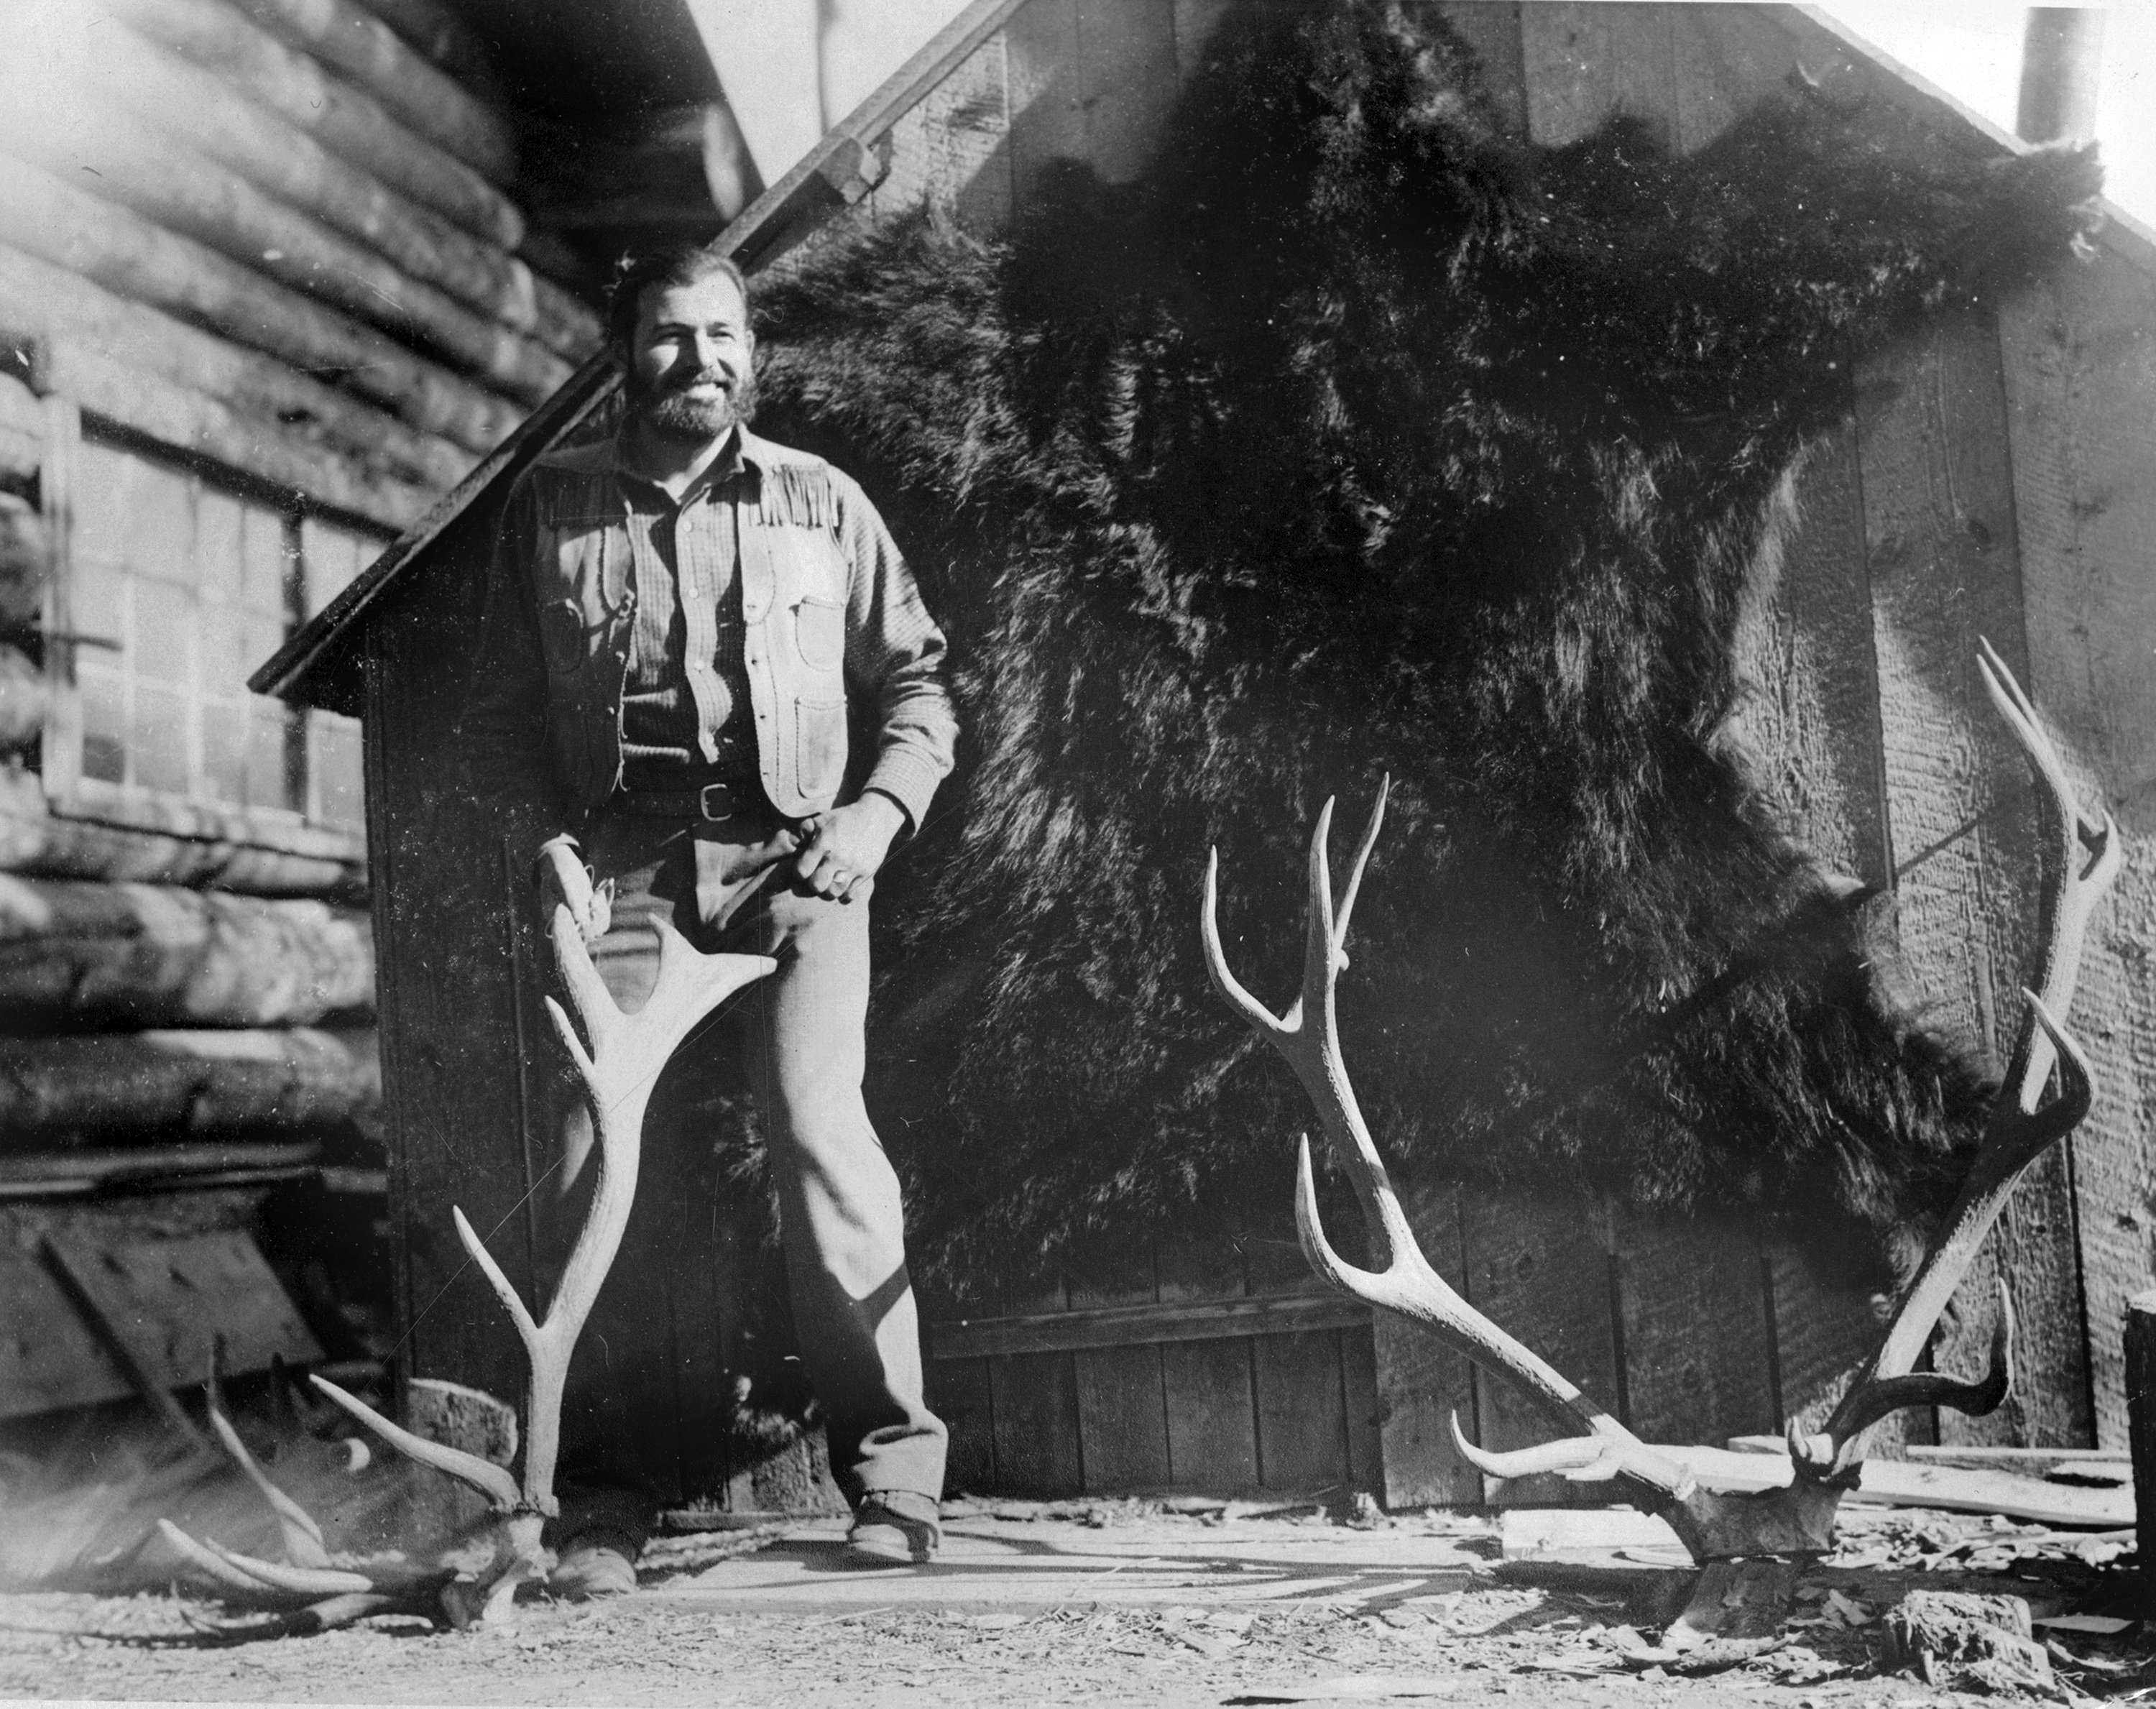 In this 1932 photo provided by the John F. Kennedy Library Foundation, Ernest Hemingway poses with a bear skin and deer antlers during a hunting trip to Nordquist's Ranch in Wyoming. (AP Photo)